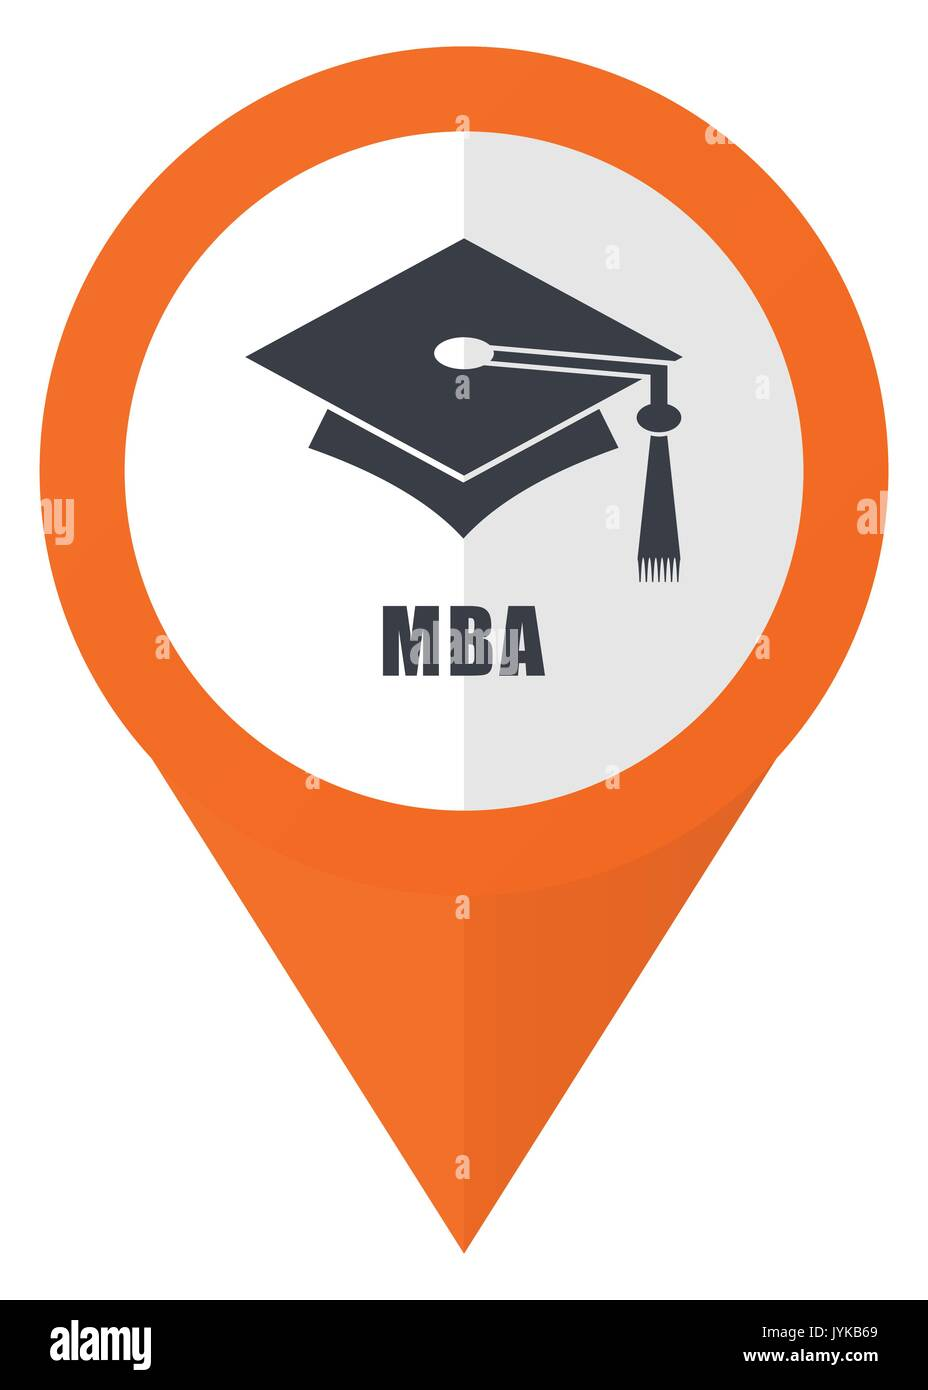 693bfe12daf Mba orange pointer vector icon in eps 10 isolated on white background. -  Stock Image